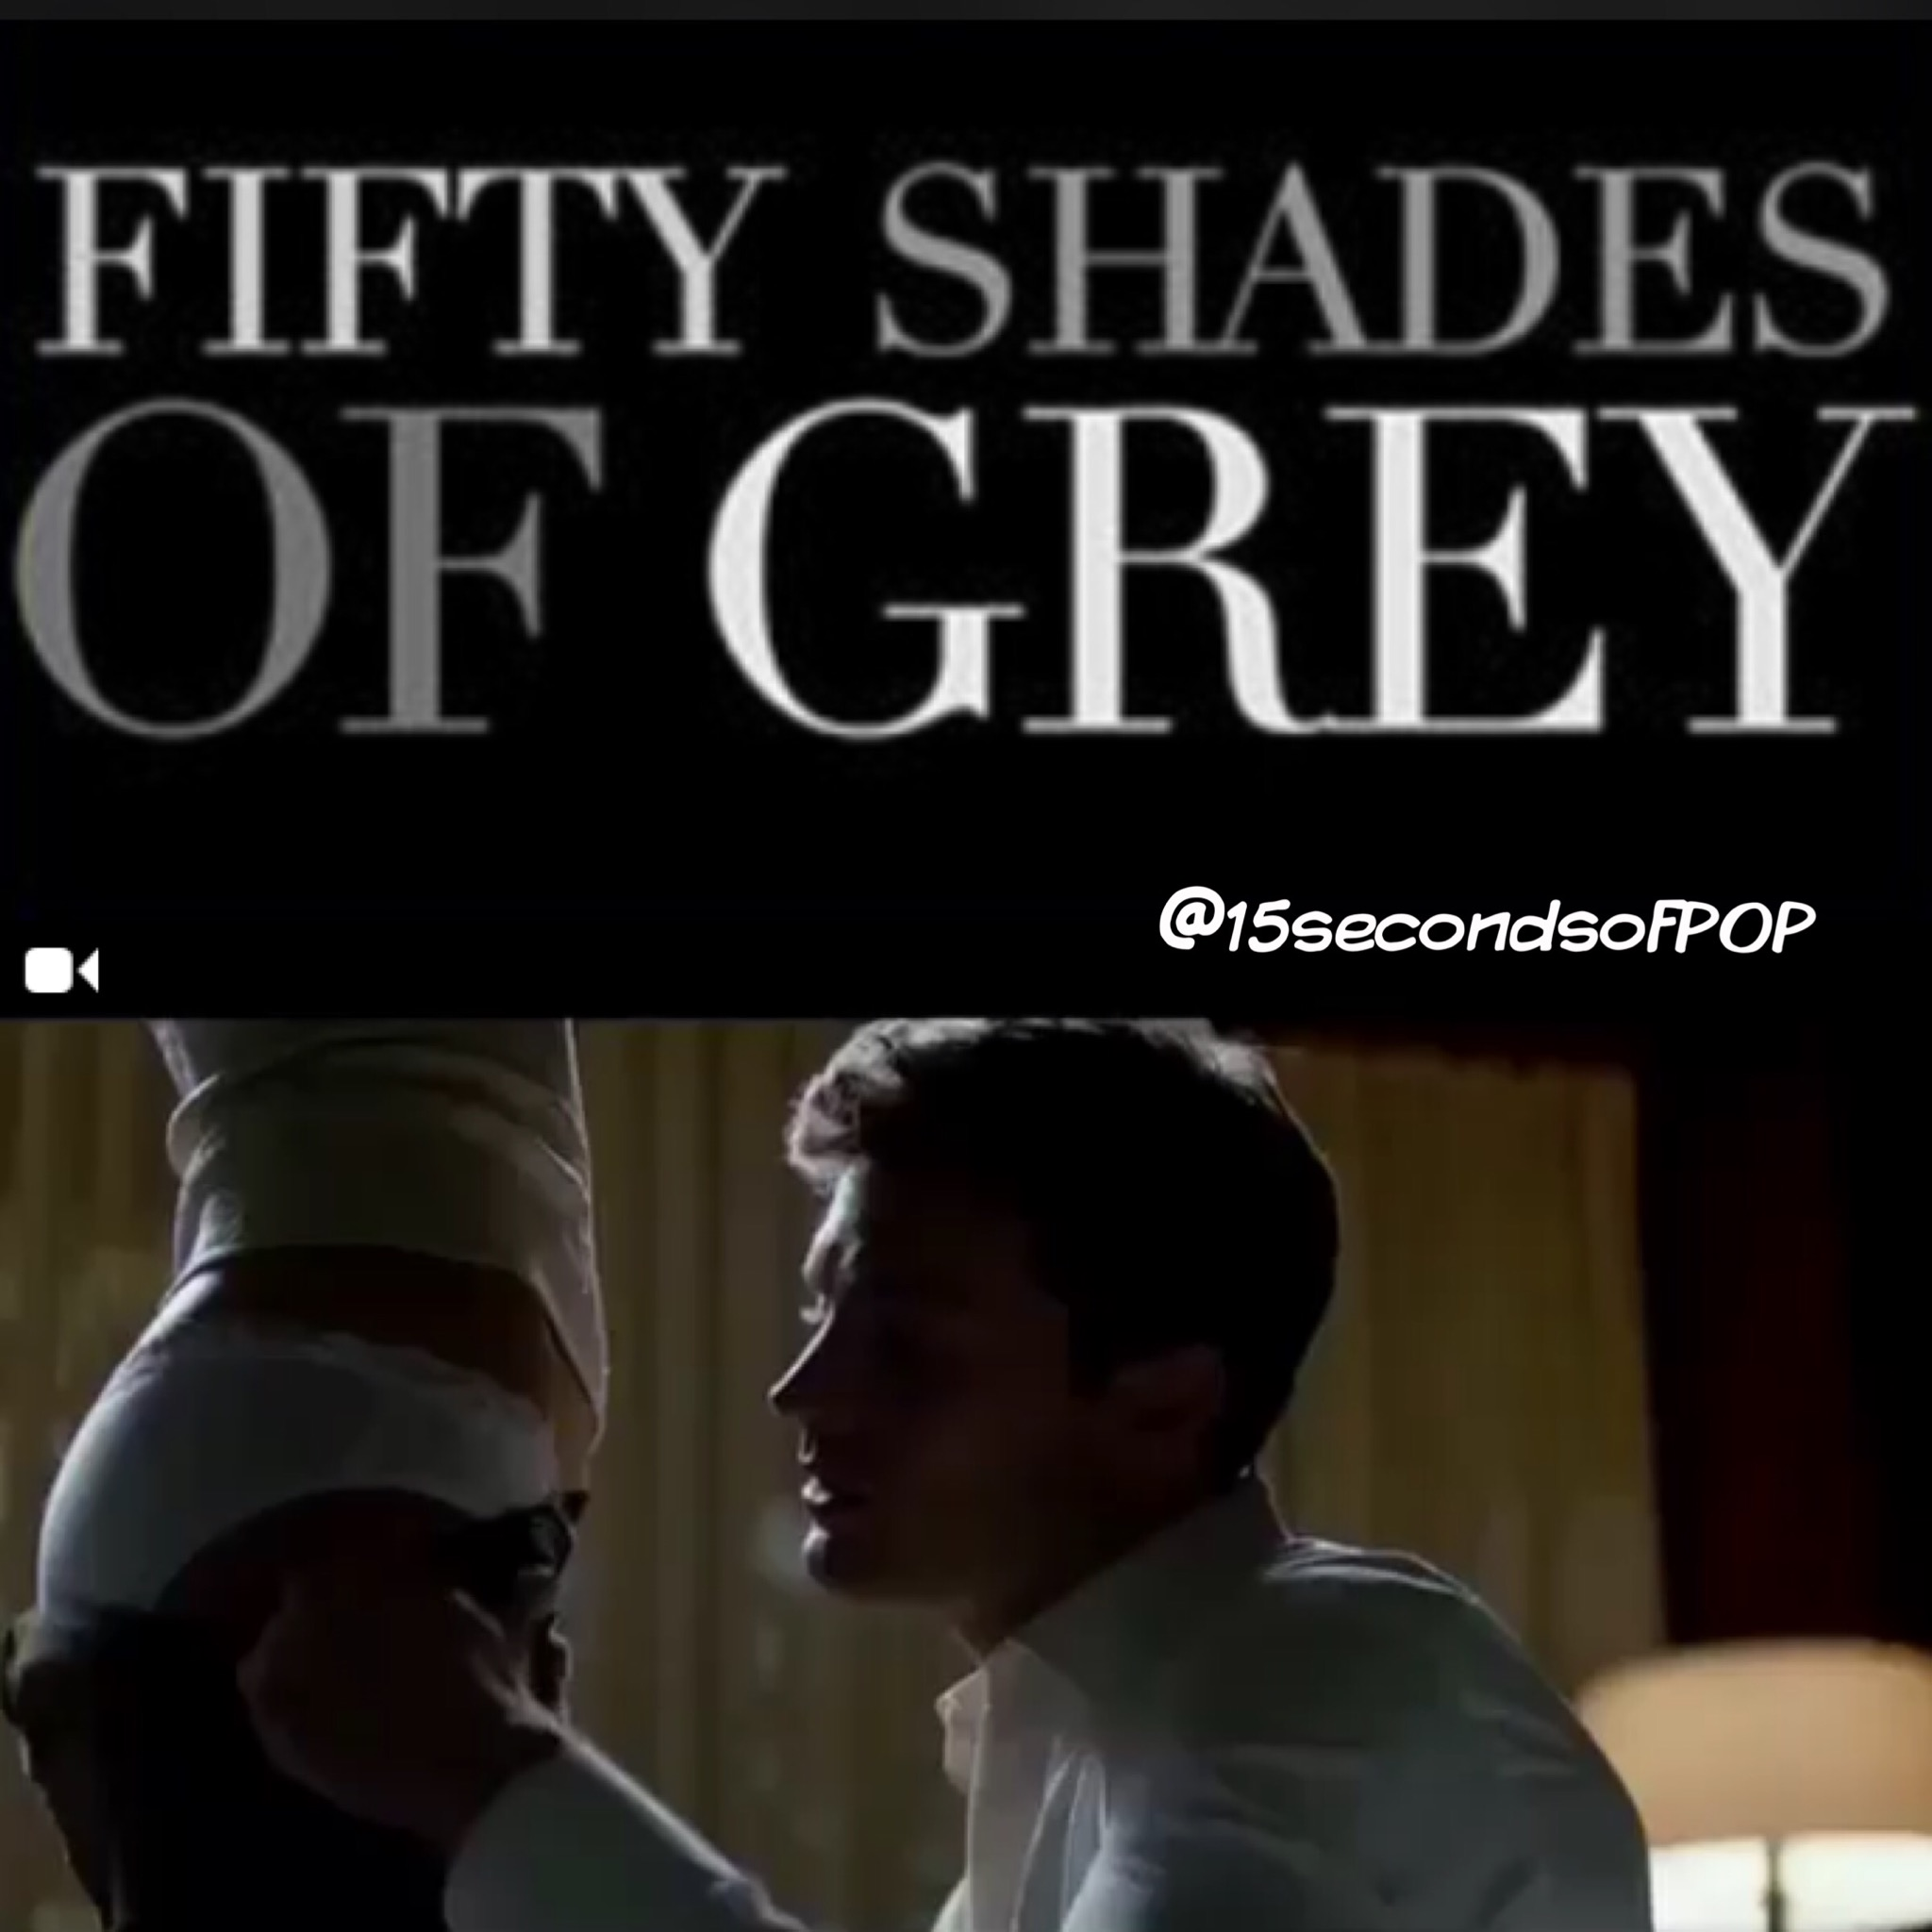 fifty shades of grey new movie trailer 15secondsofpop. Black Bedroom Furniture Sets. Home Design Ideas